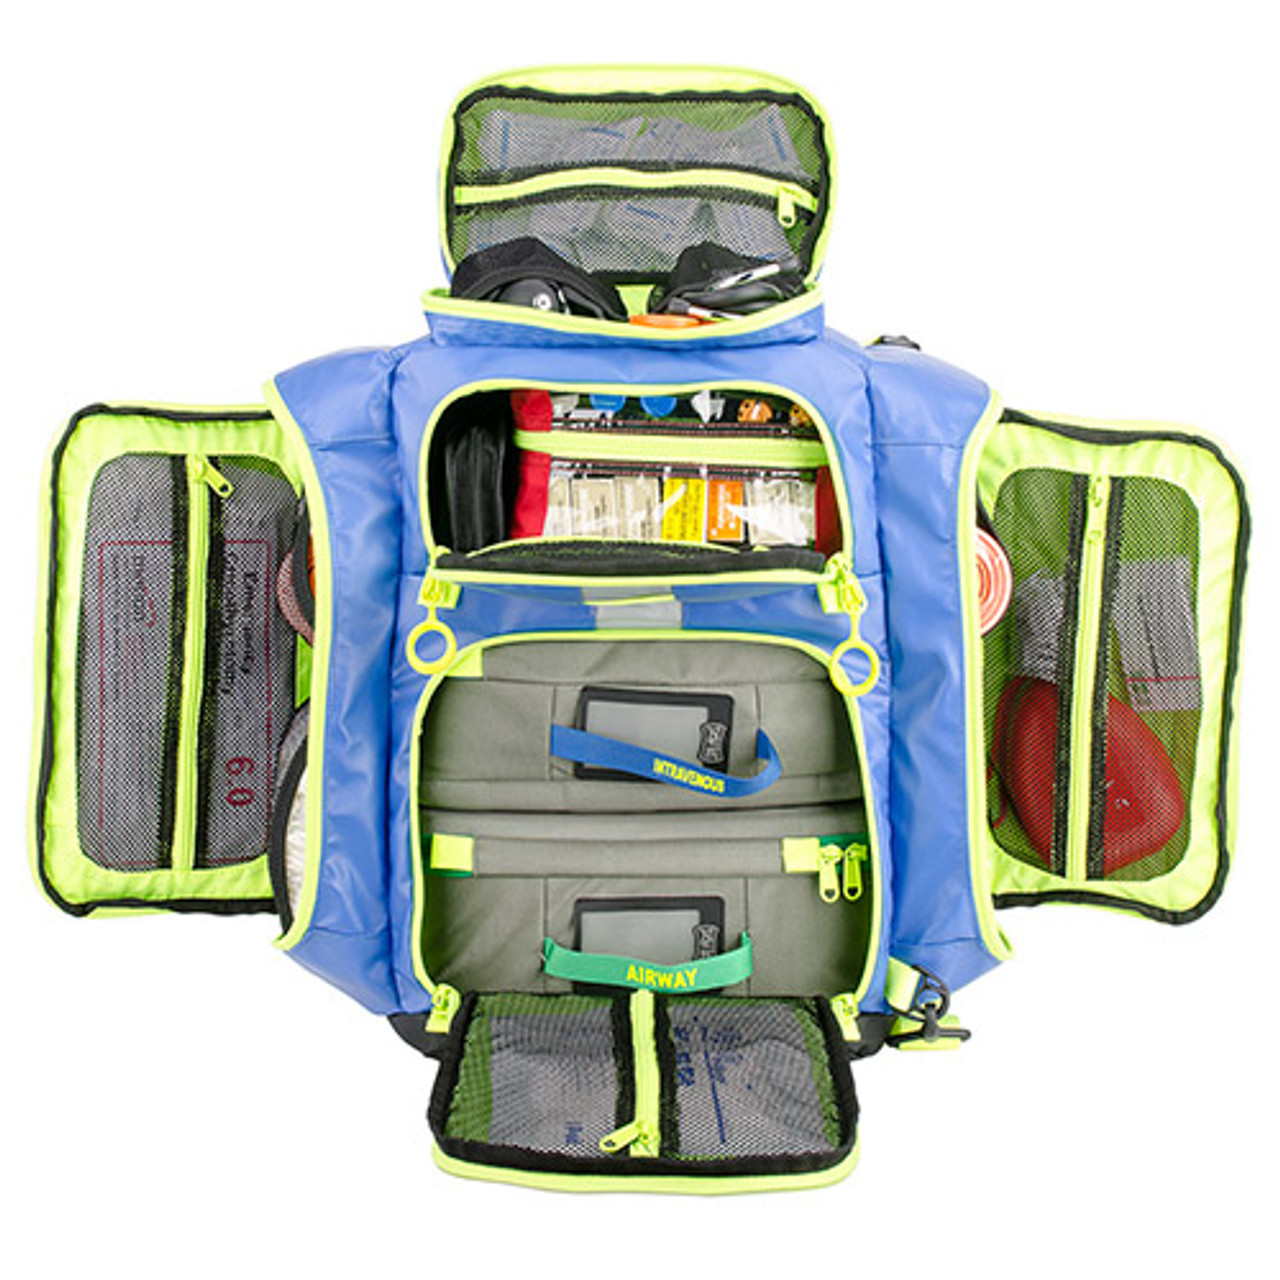 StatPacks G3 Perfusion Backpack - Blue, Green, Red or Black